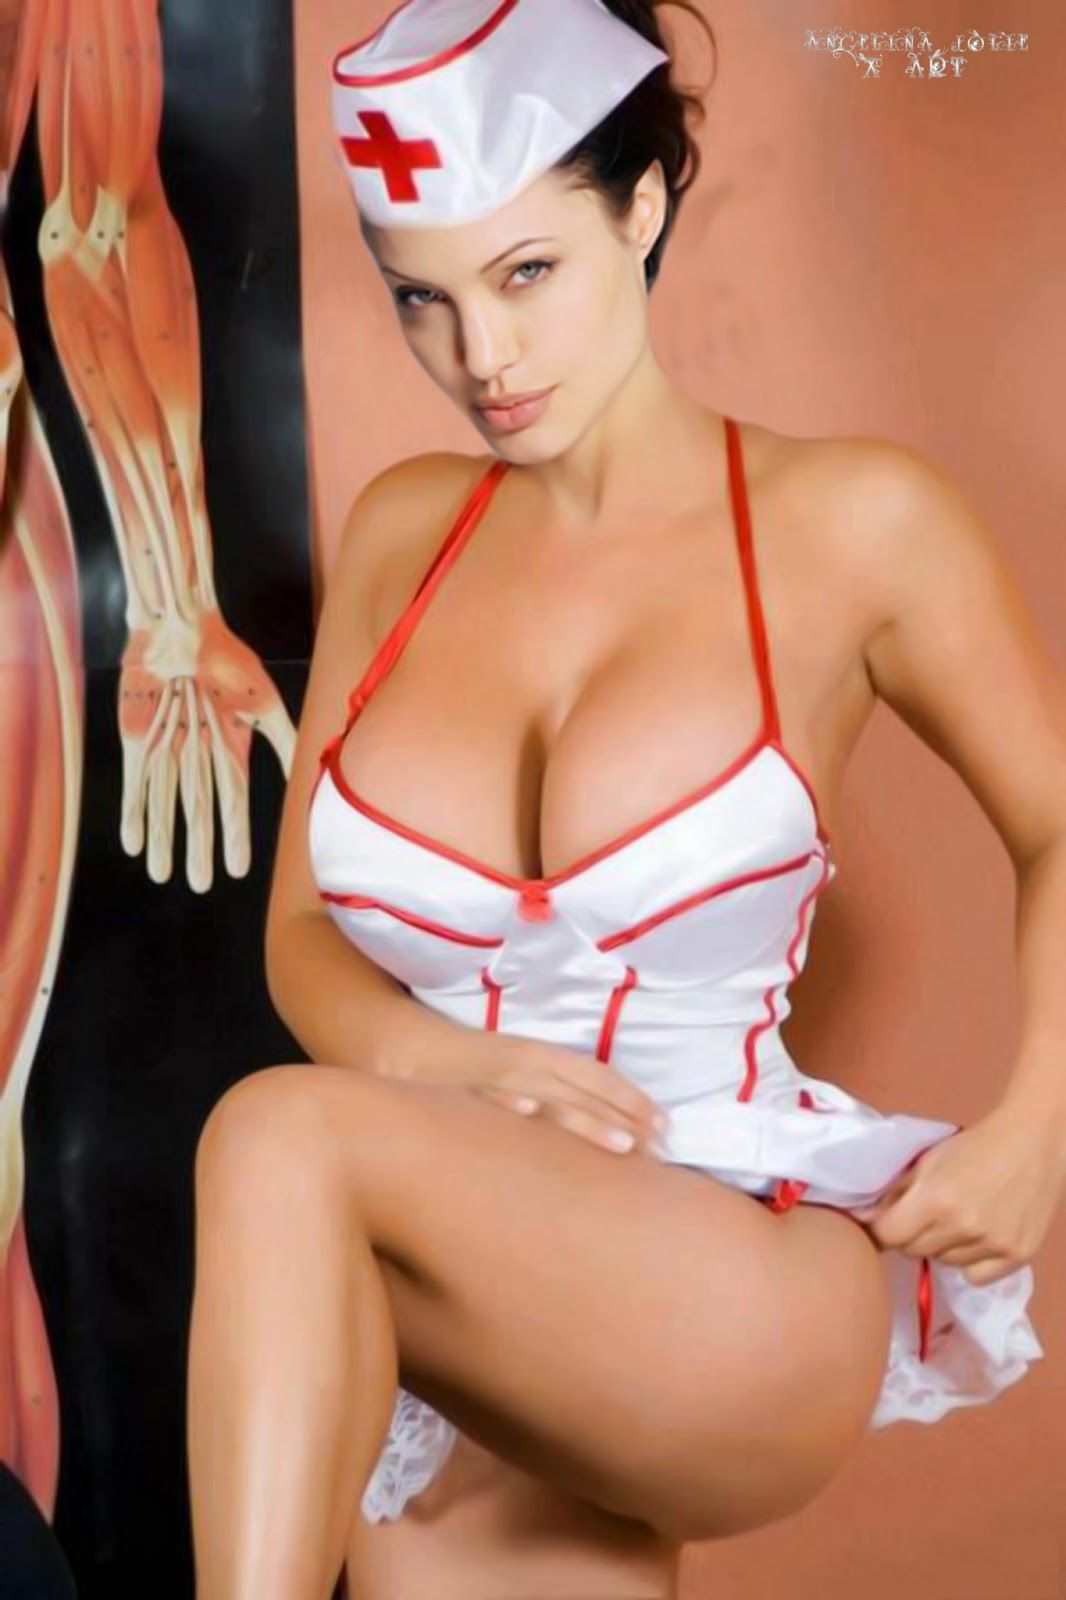 hot-topless-female-nurses-indian-girl-beauties